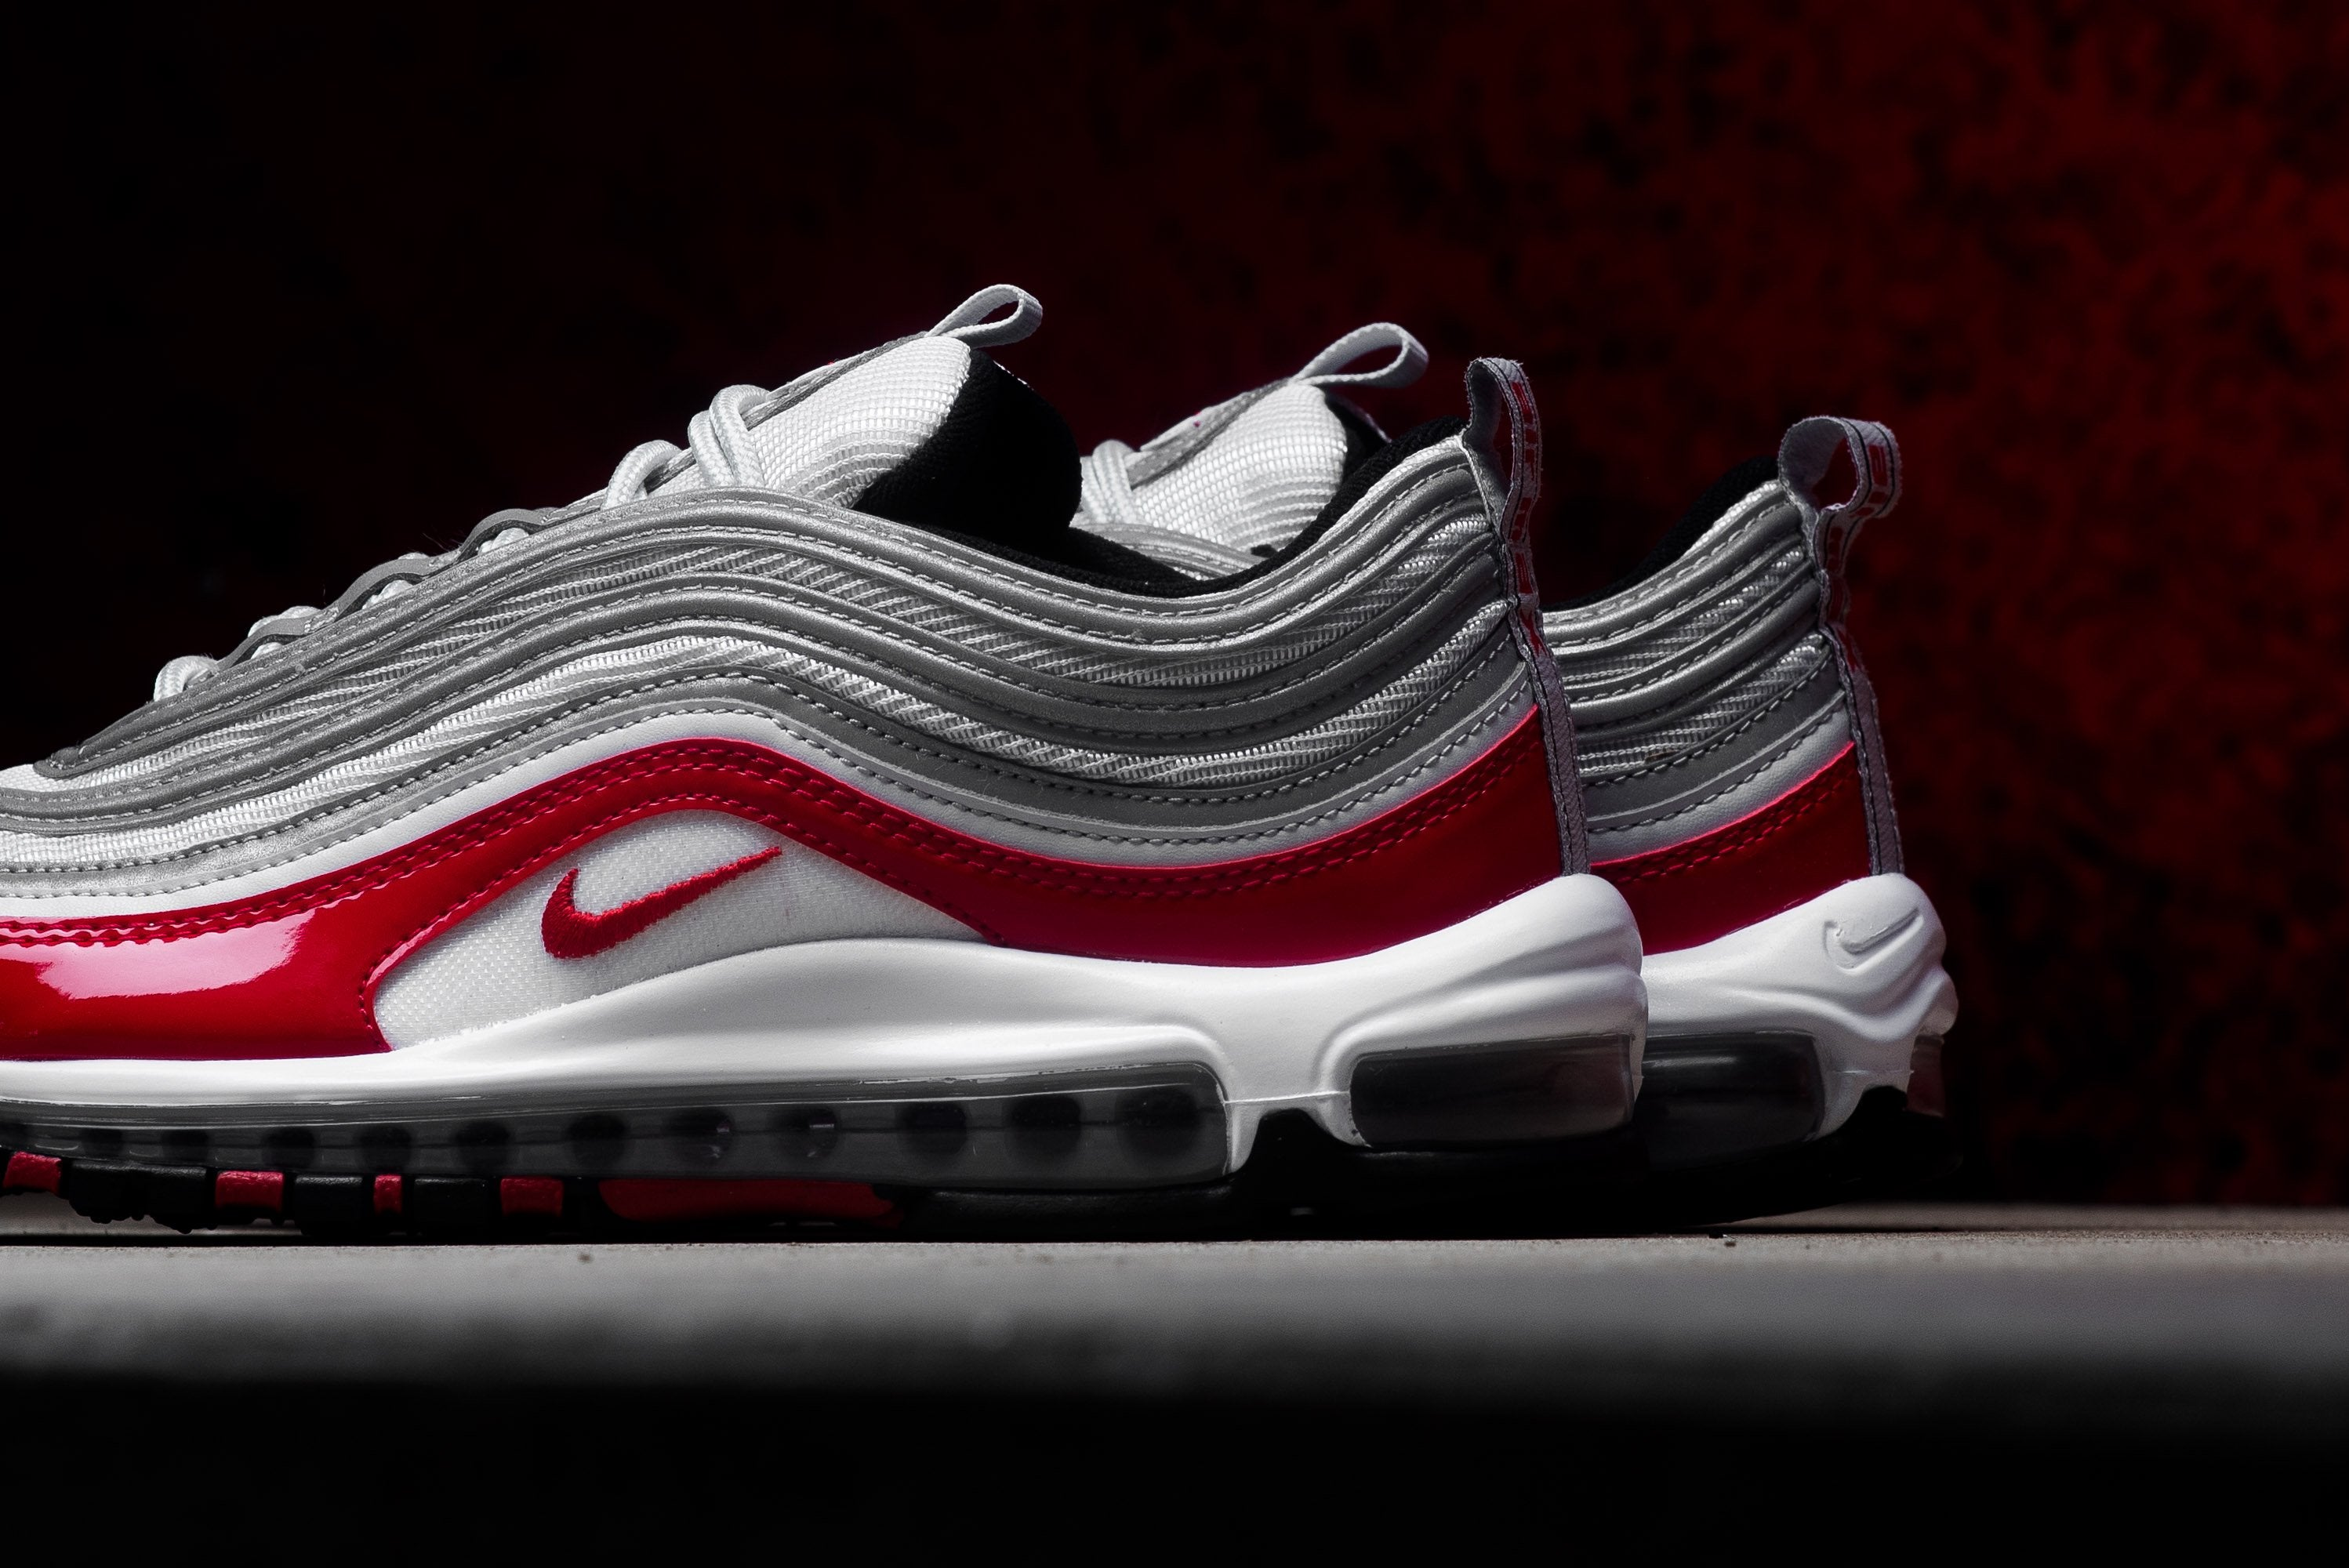 Nike Air Max 97 - Pure Platinum/University Red/Black/White #921826-009-Preorder Item-Navy Selected Shop